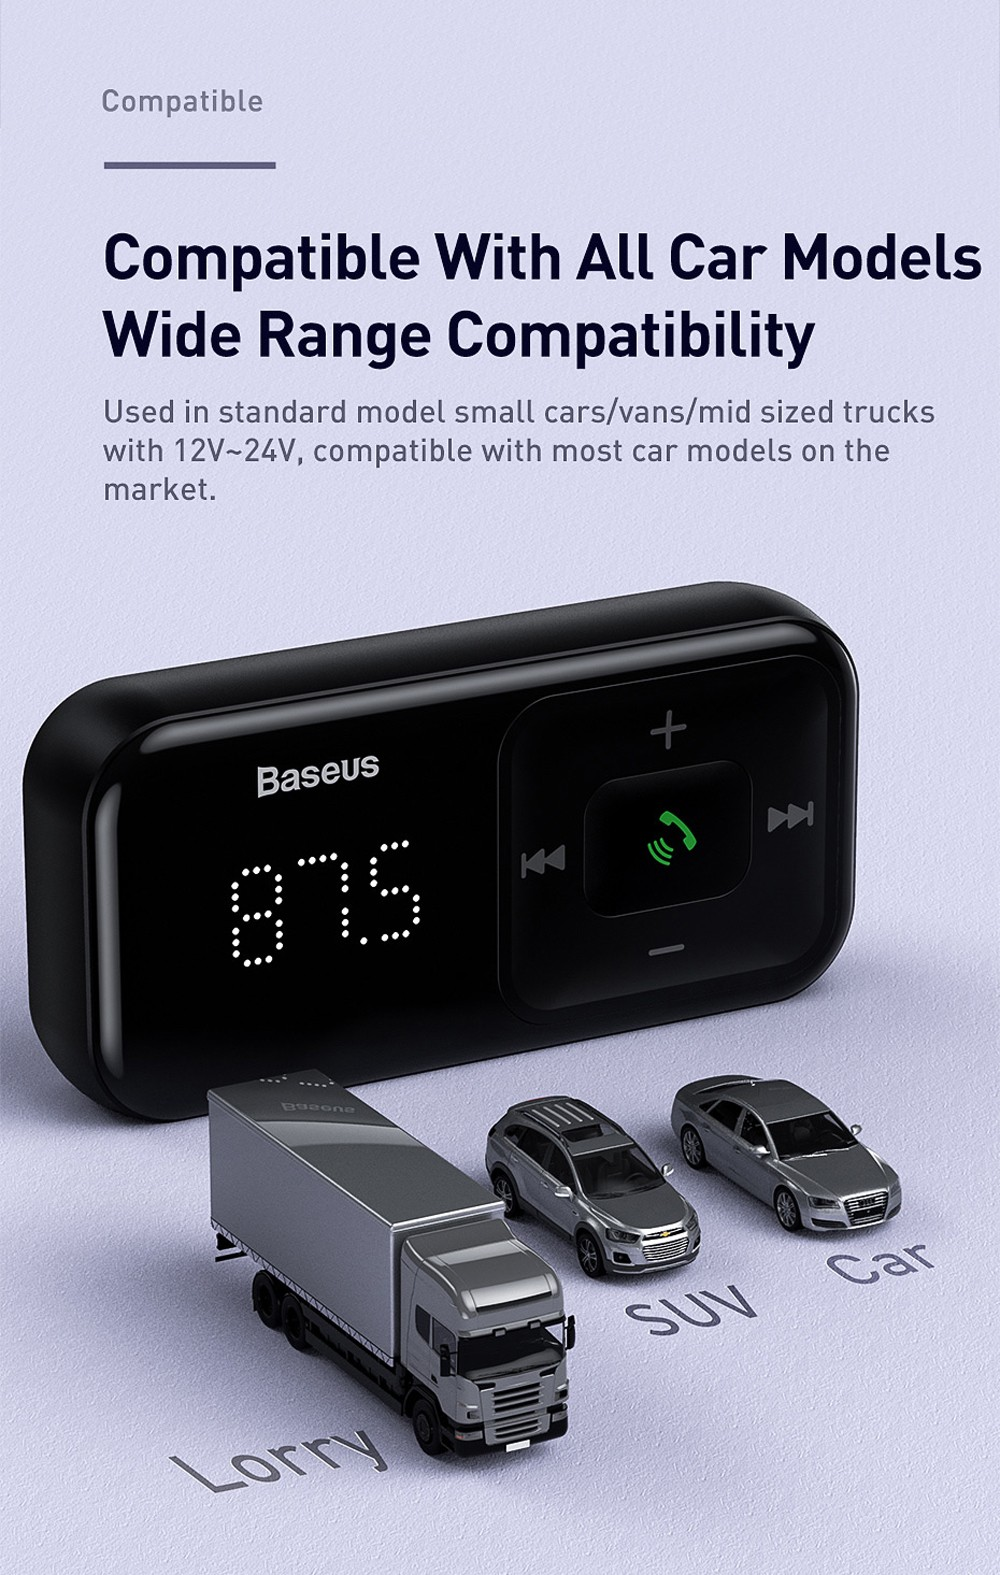 Baseus S-16 Wireless Bluetooth MP3 Car Charger - Black